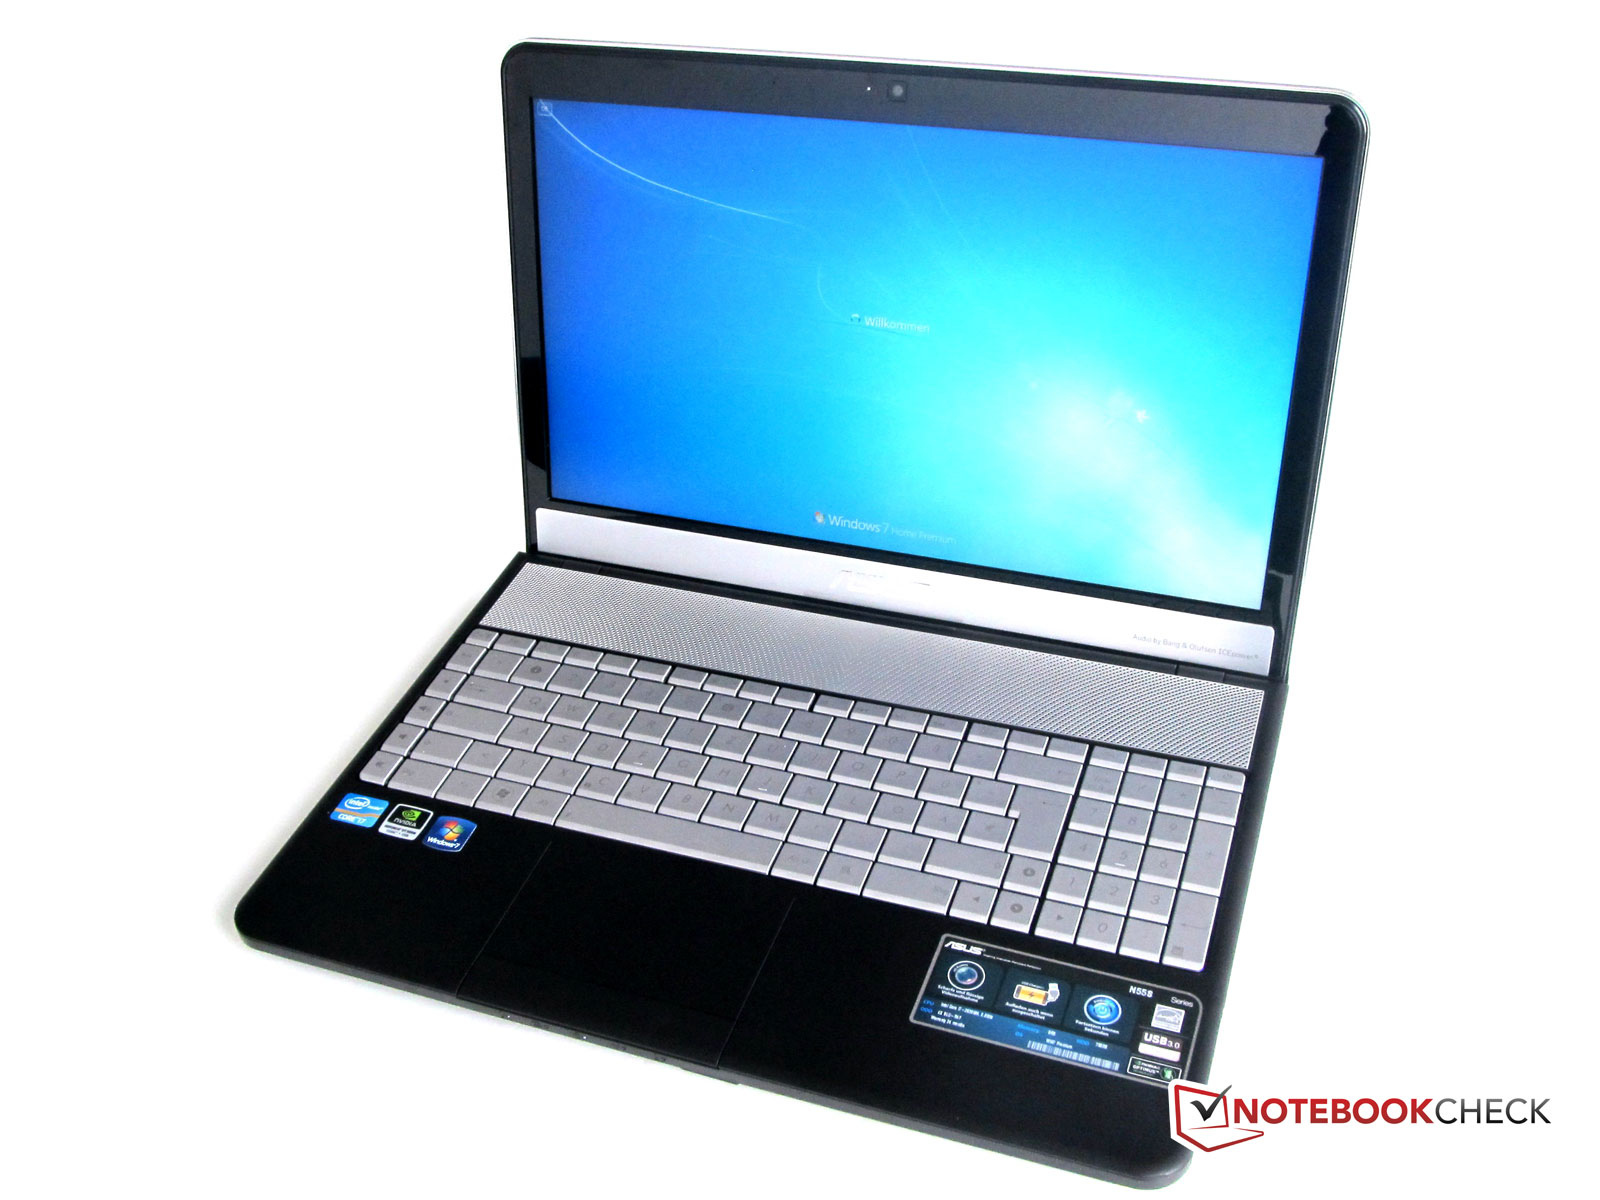 ASUS N55SF NOTEBOOK VIRTUAL CAMERA WINDOWS 8 DRIVER DOWNLOAD